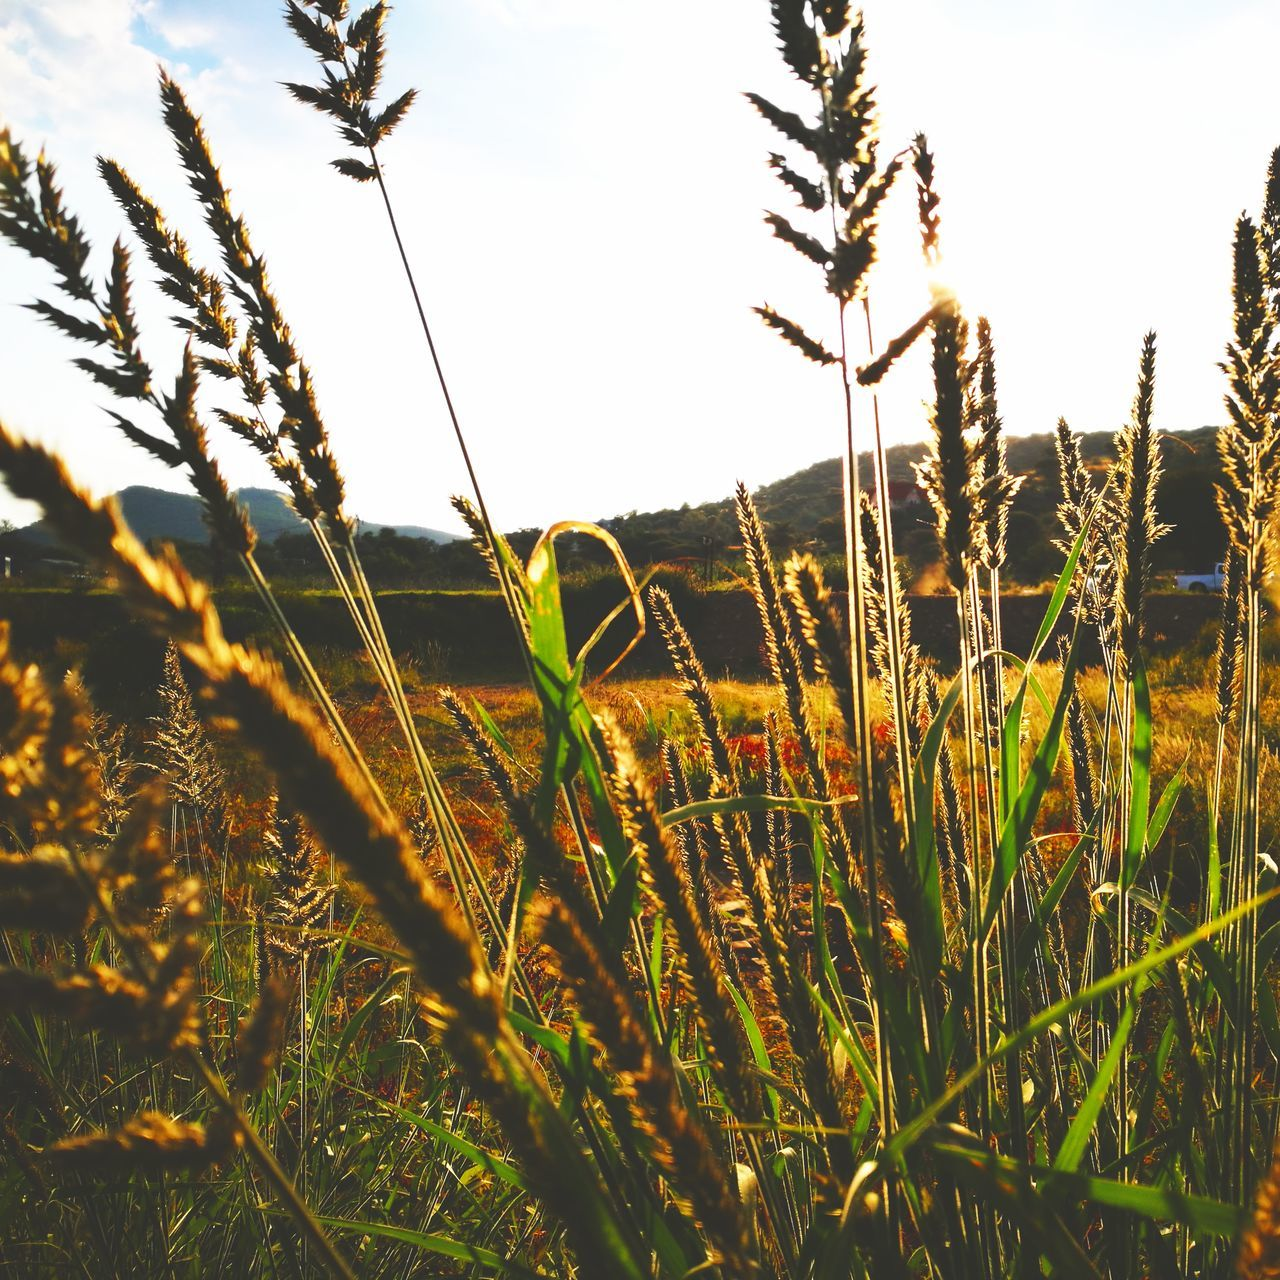 Grass in windy park Growth Nature Sunset Close-up No People Plant Sunlight Beauty In Nature Outdoors Day Sky Grassland Nature Photography Huawei Grass Park Windhoek Namibia HuaweiP9Photography Nature_collection Grassfield